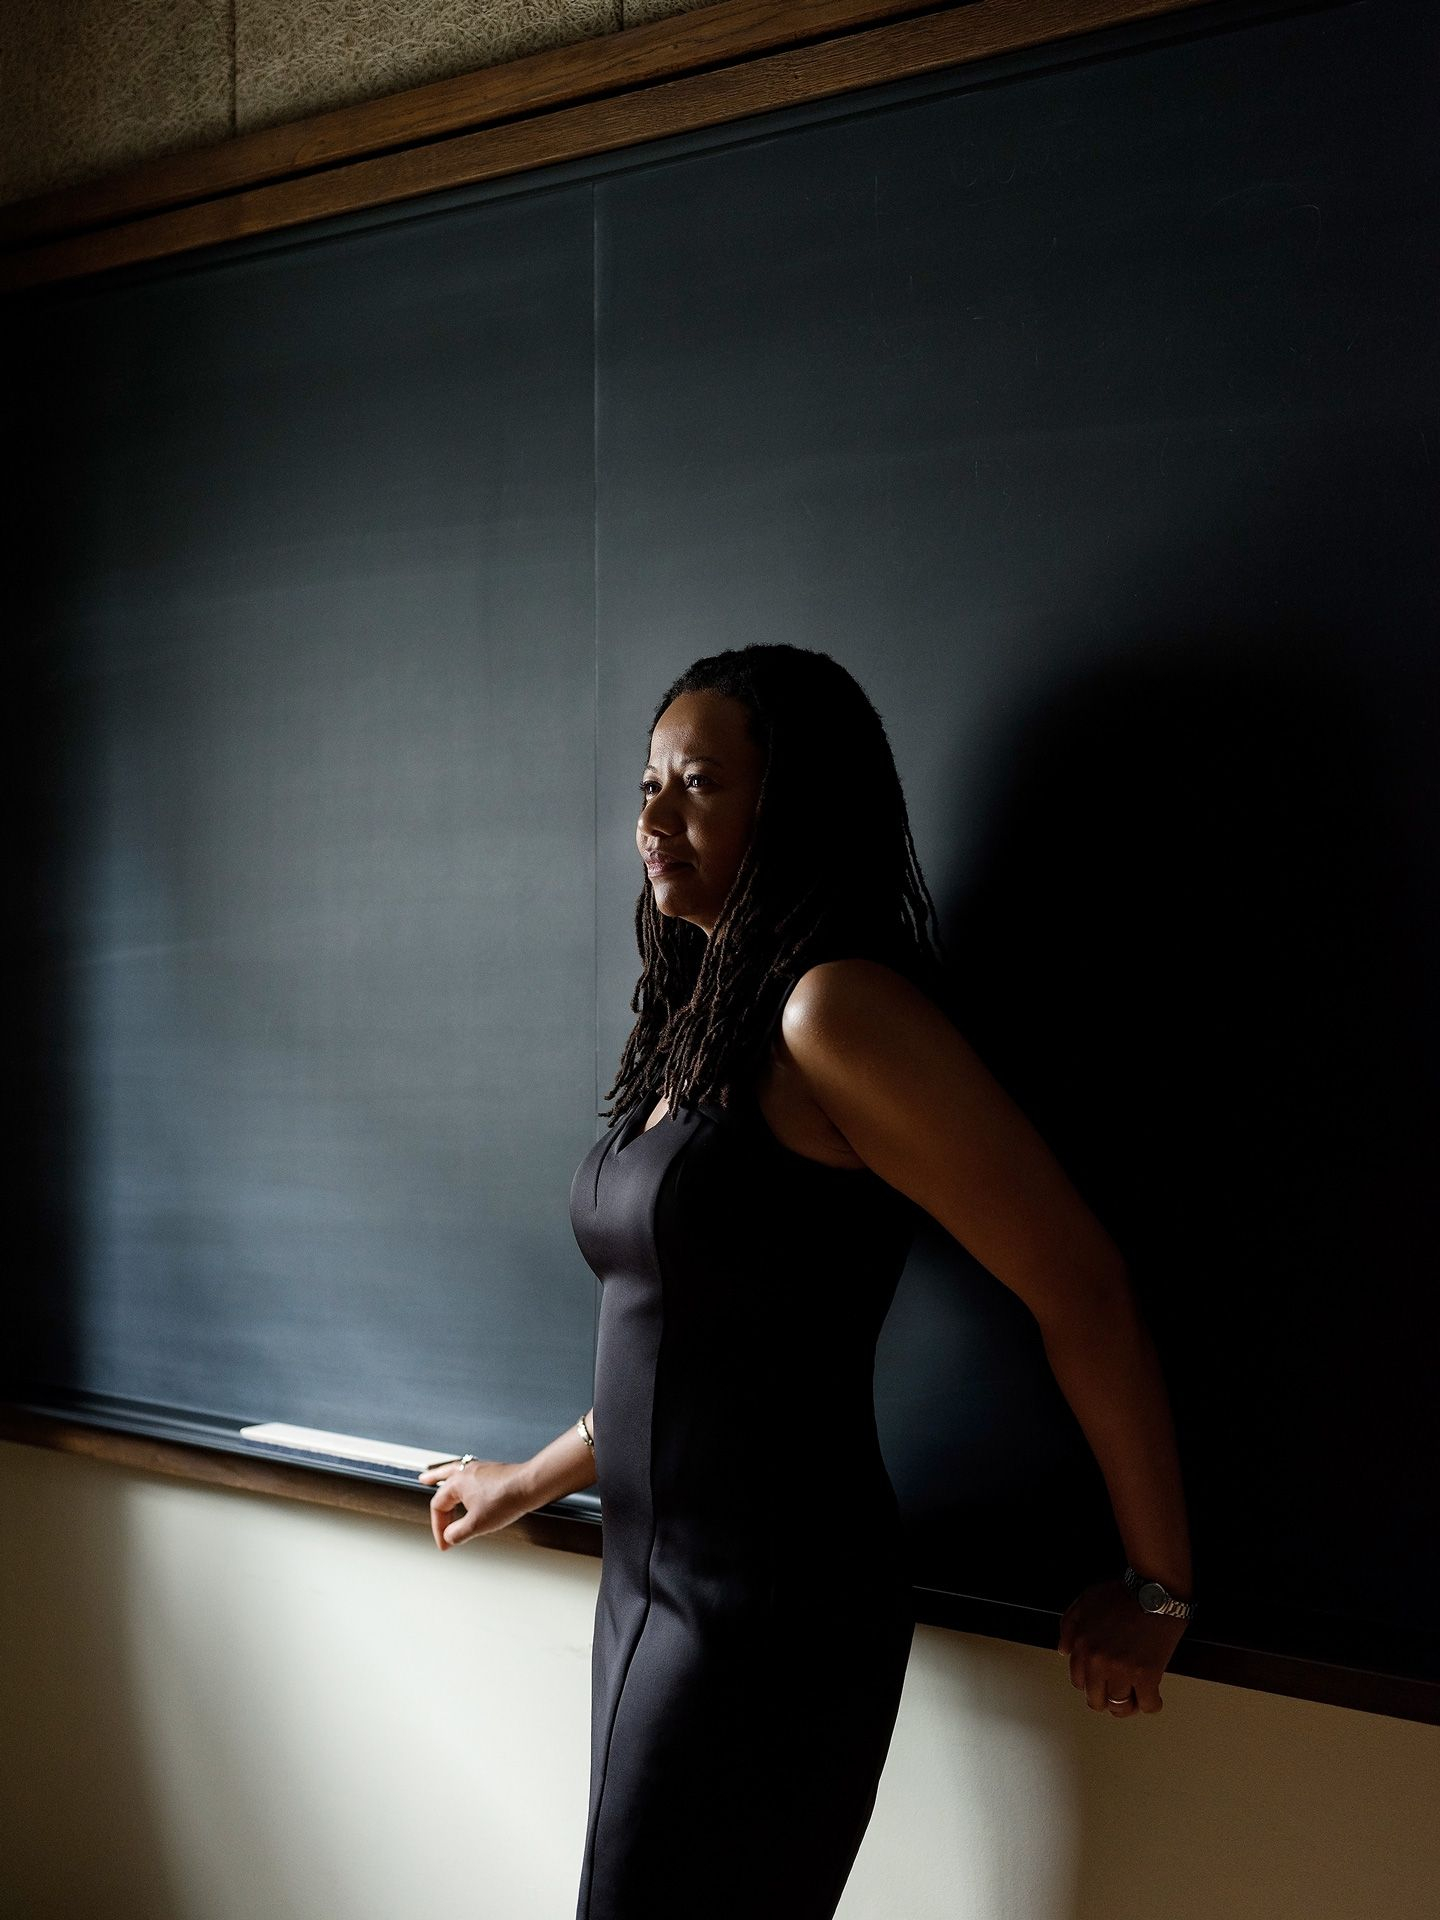 Charmaine Nelson black woman university teacher leaning against clean black board wearing fitting black dress smiling face in the sun by Guillaume Simoneau for University Affairs magazine